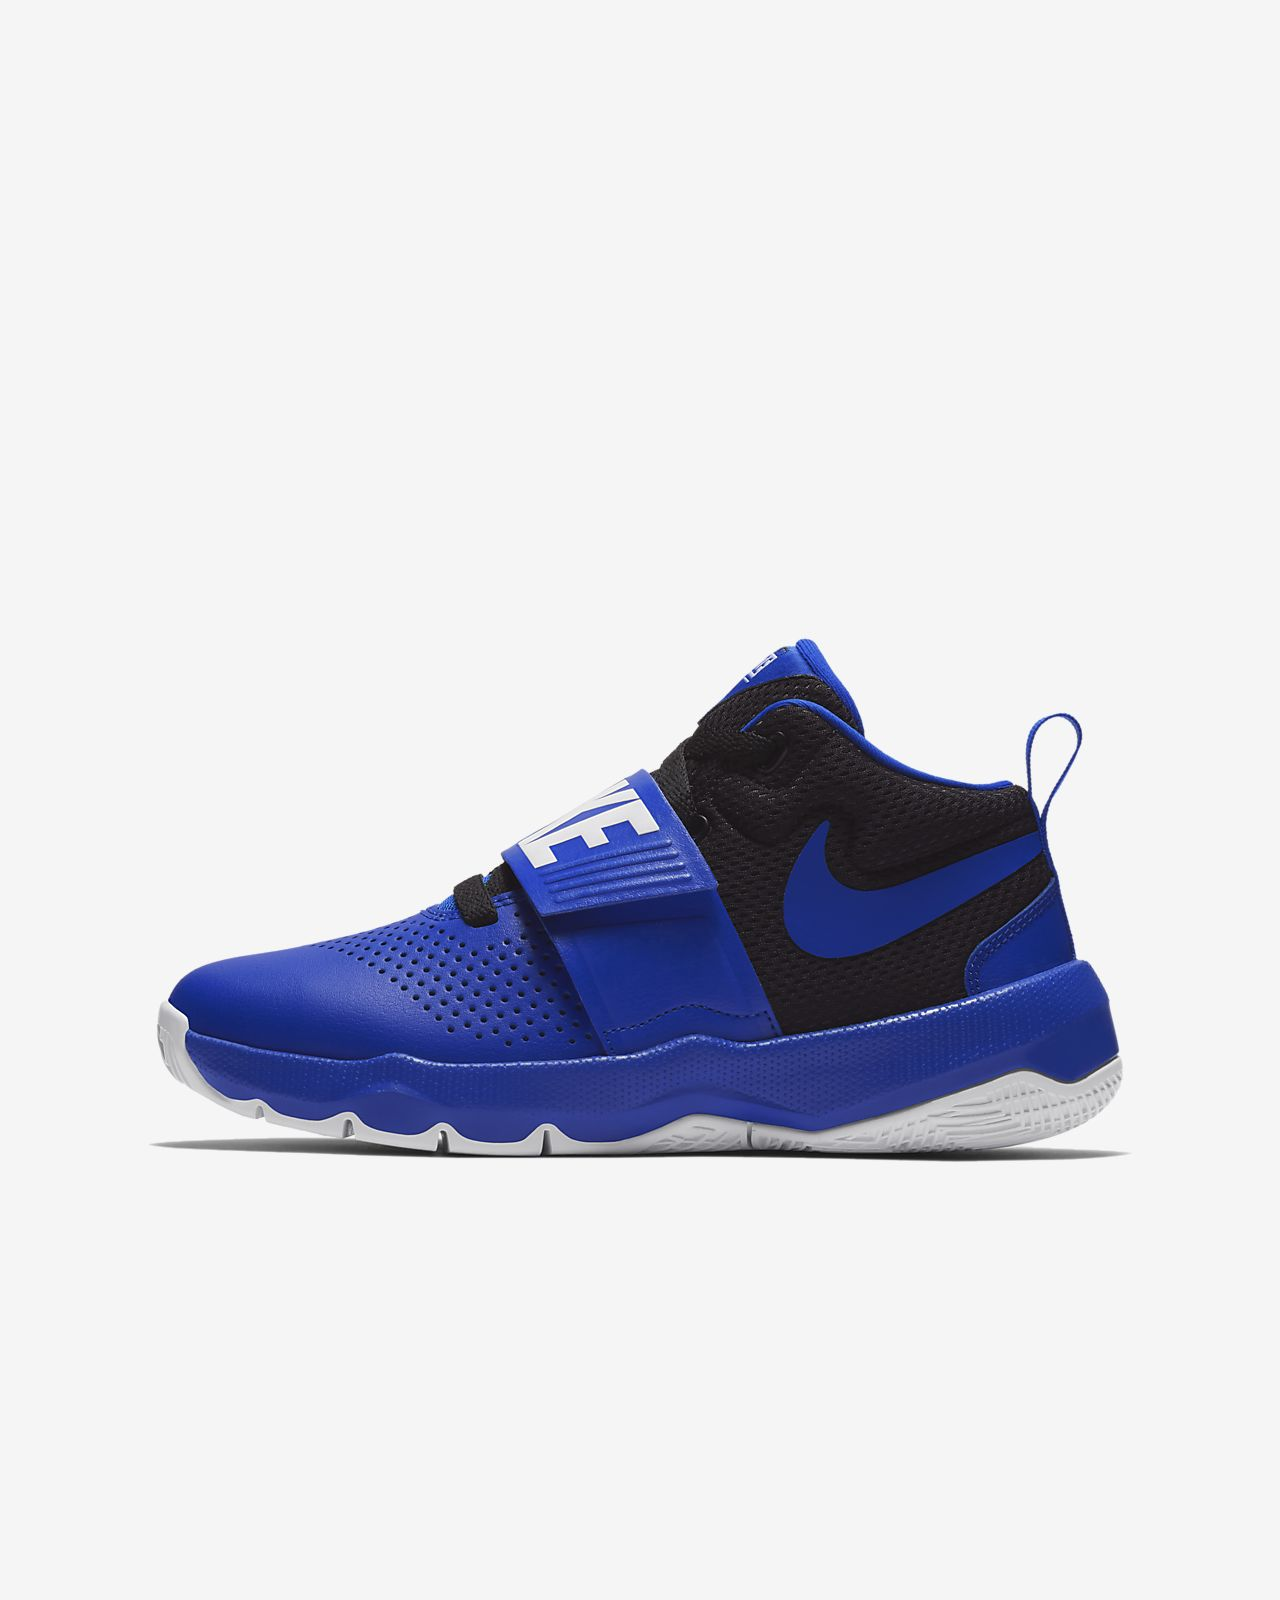 15d01648bd5 Nike Team Hustle D 8 Big Kids  Basketball Shoe. Nike.com